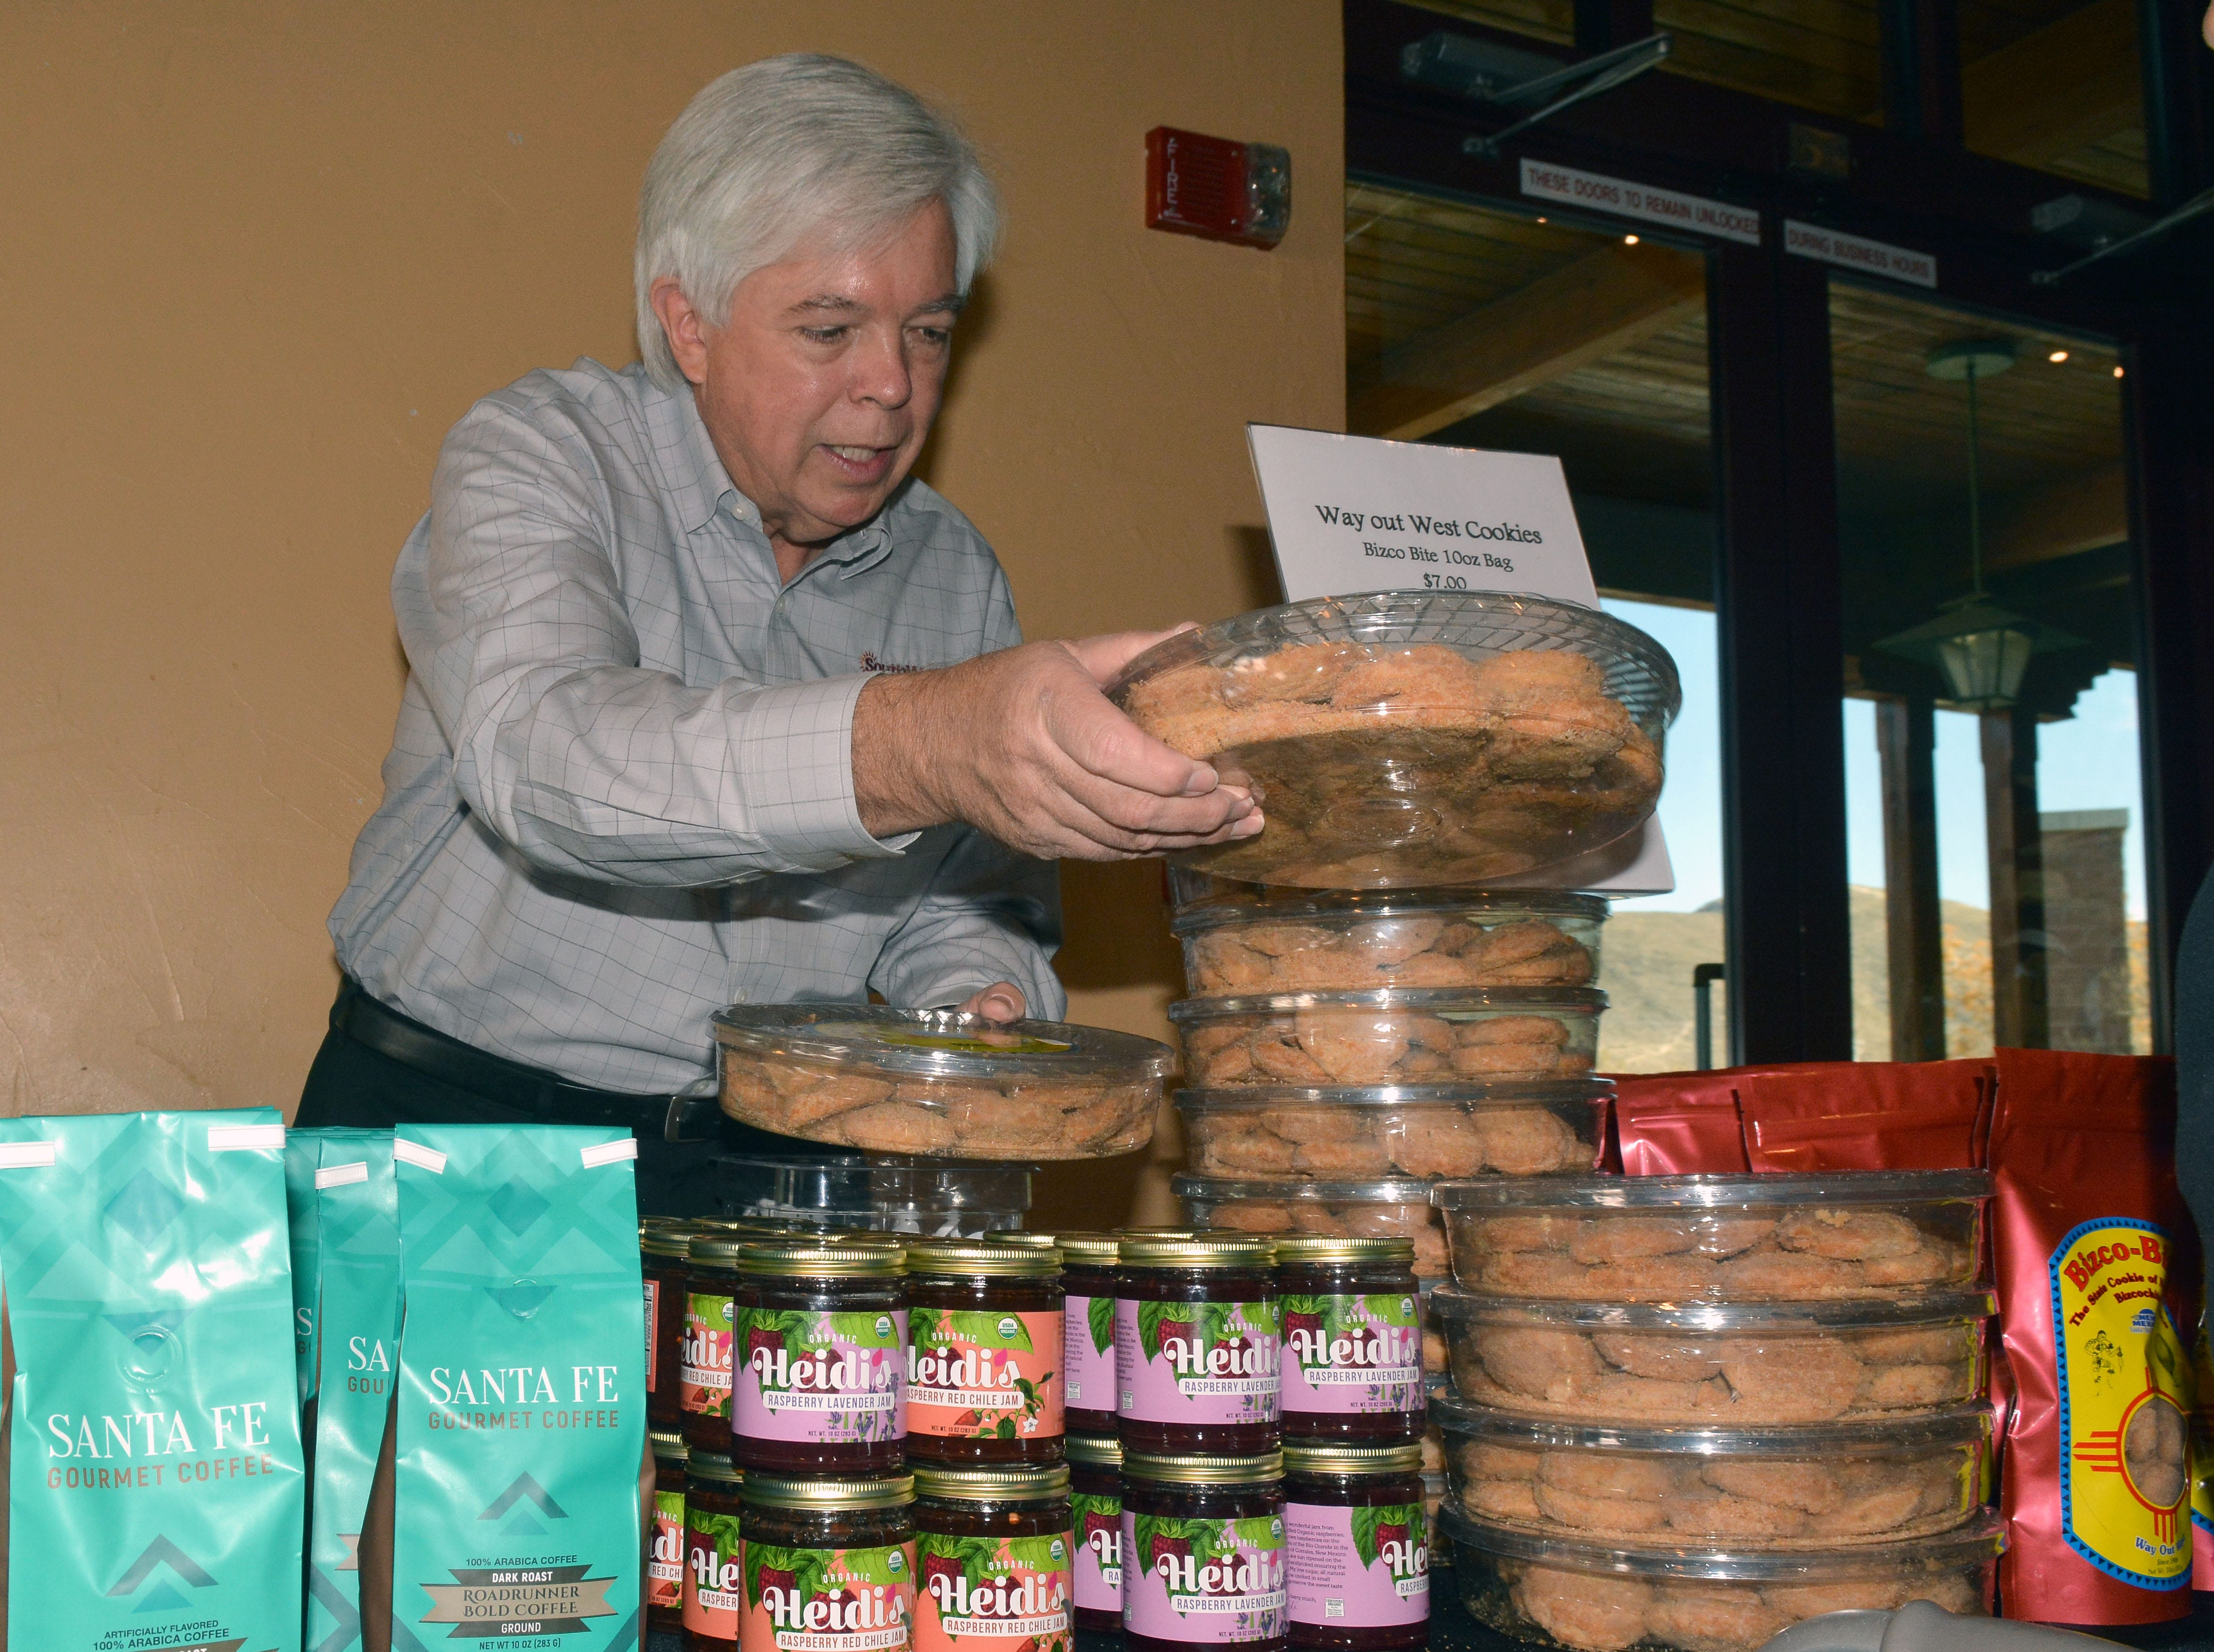 Patrick Beare of Southwest Best Brands displays New Mexico products his company distributes including coffee, jams and biscochitos.  Photo taken 11/17/18.